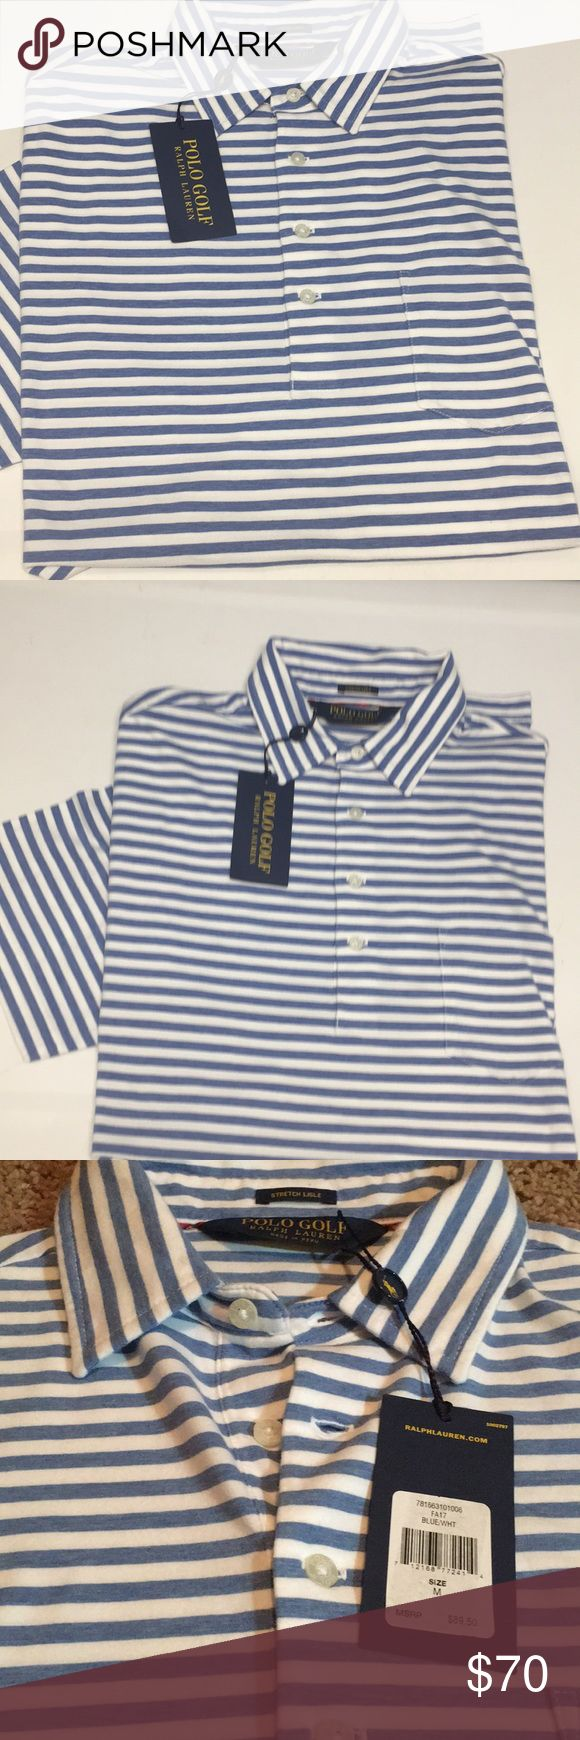 🆕 POLO GOLF Ralph Lauren Lisle Stripe Shirt $90 New with tags | Men's size Medium | POLO GOLF Ralph Lauren | Short Sleeve | Stripes Polo Shirt with Pocket | UOC: 712168772414 | MSRP: $89.50 | New with Tags | See last photo for item description and measurements Polo by Ralph Lauren Shirts Polos